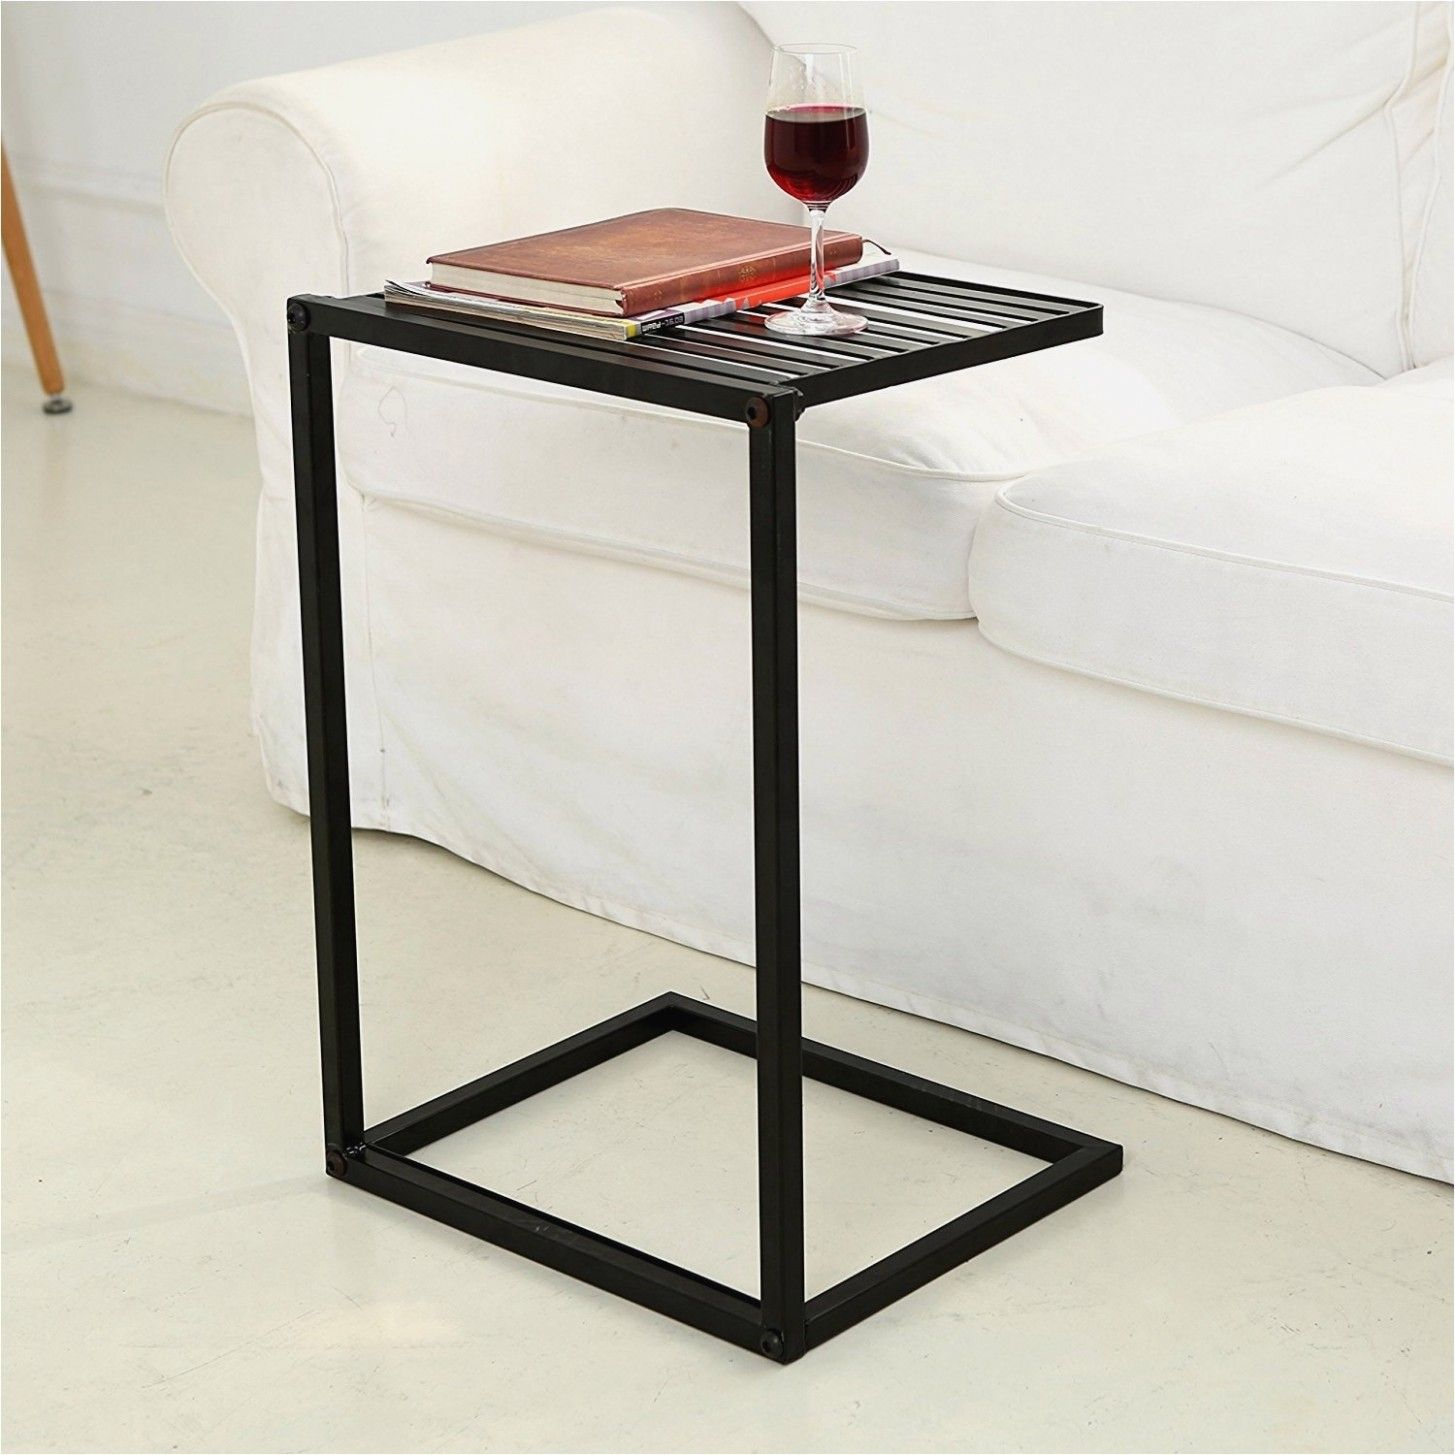 The Powerful Photos Sofa Side Table Slide Under For 8 At New Home In 2020 Sofa Snack Table Couch Table Sofa Side Table